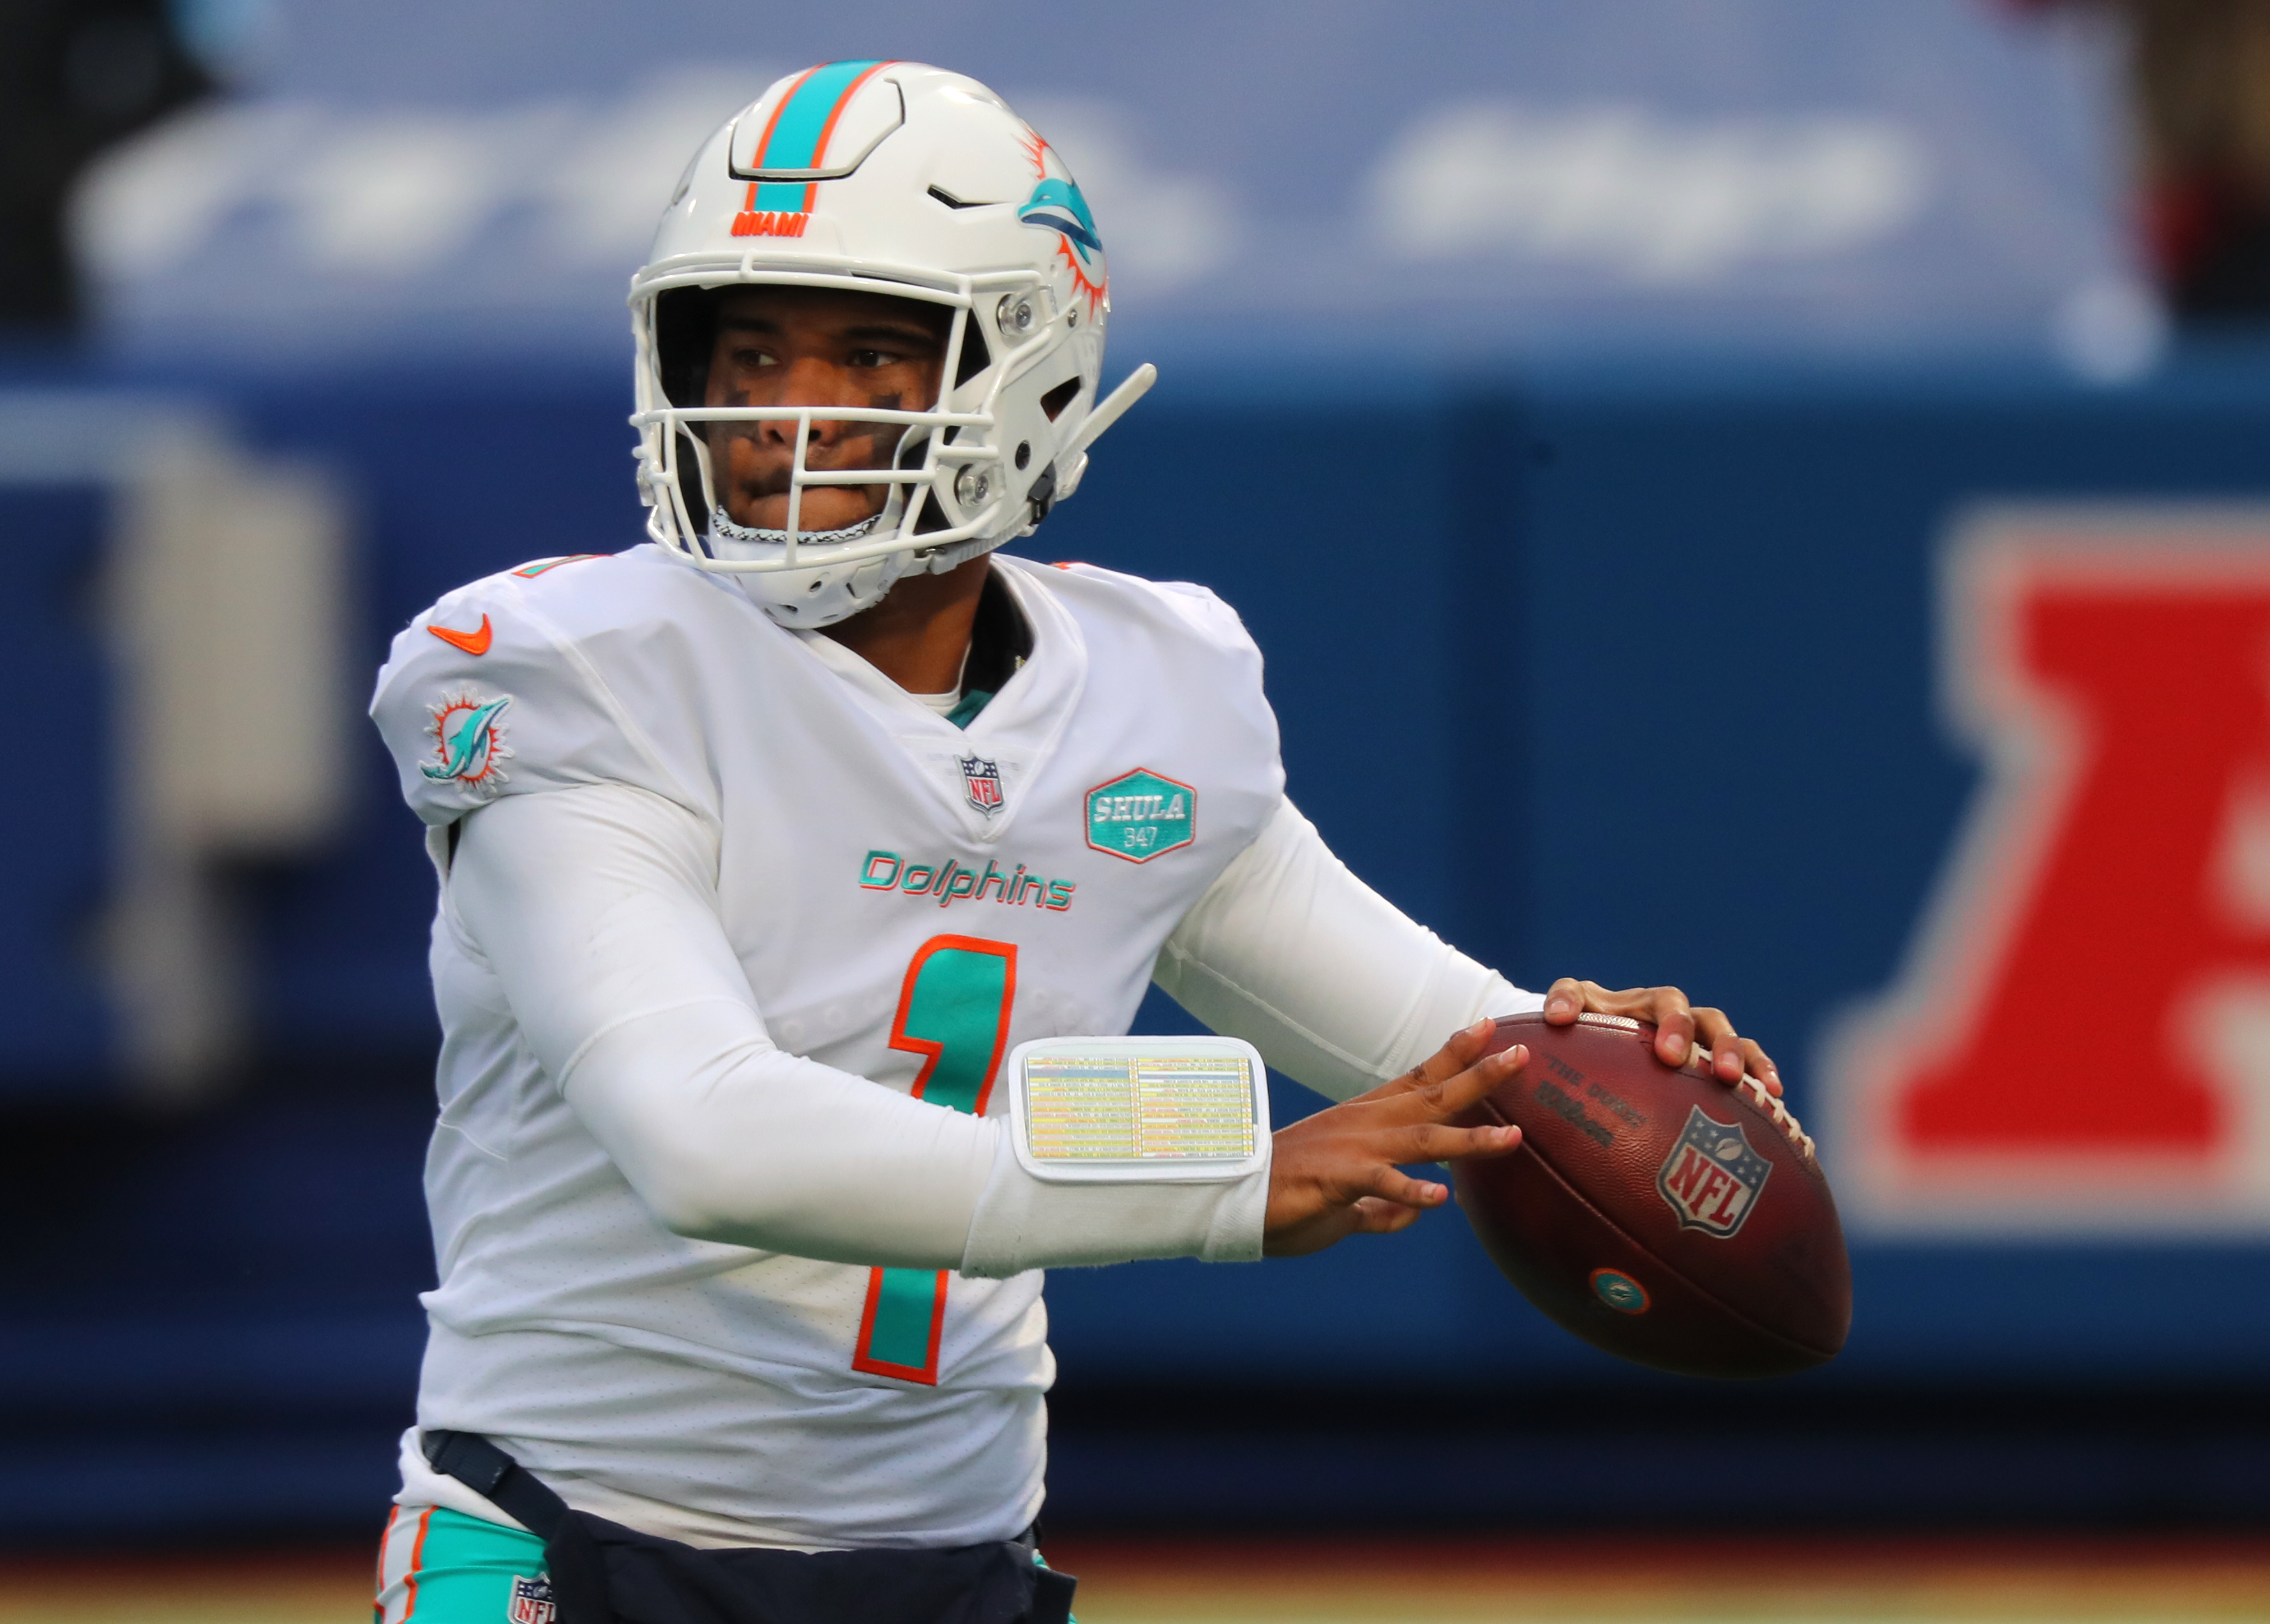 Tua Tagovailoa #1 of the Miami Dolphins looks to throw a pass against the Buffalo Bills at Bills Stadium on January 3, 2021 in Orchard Park, New York.